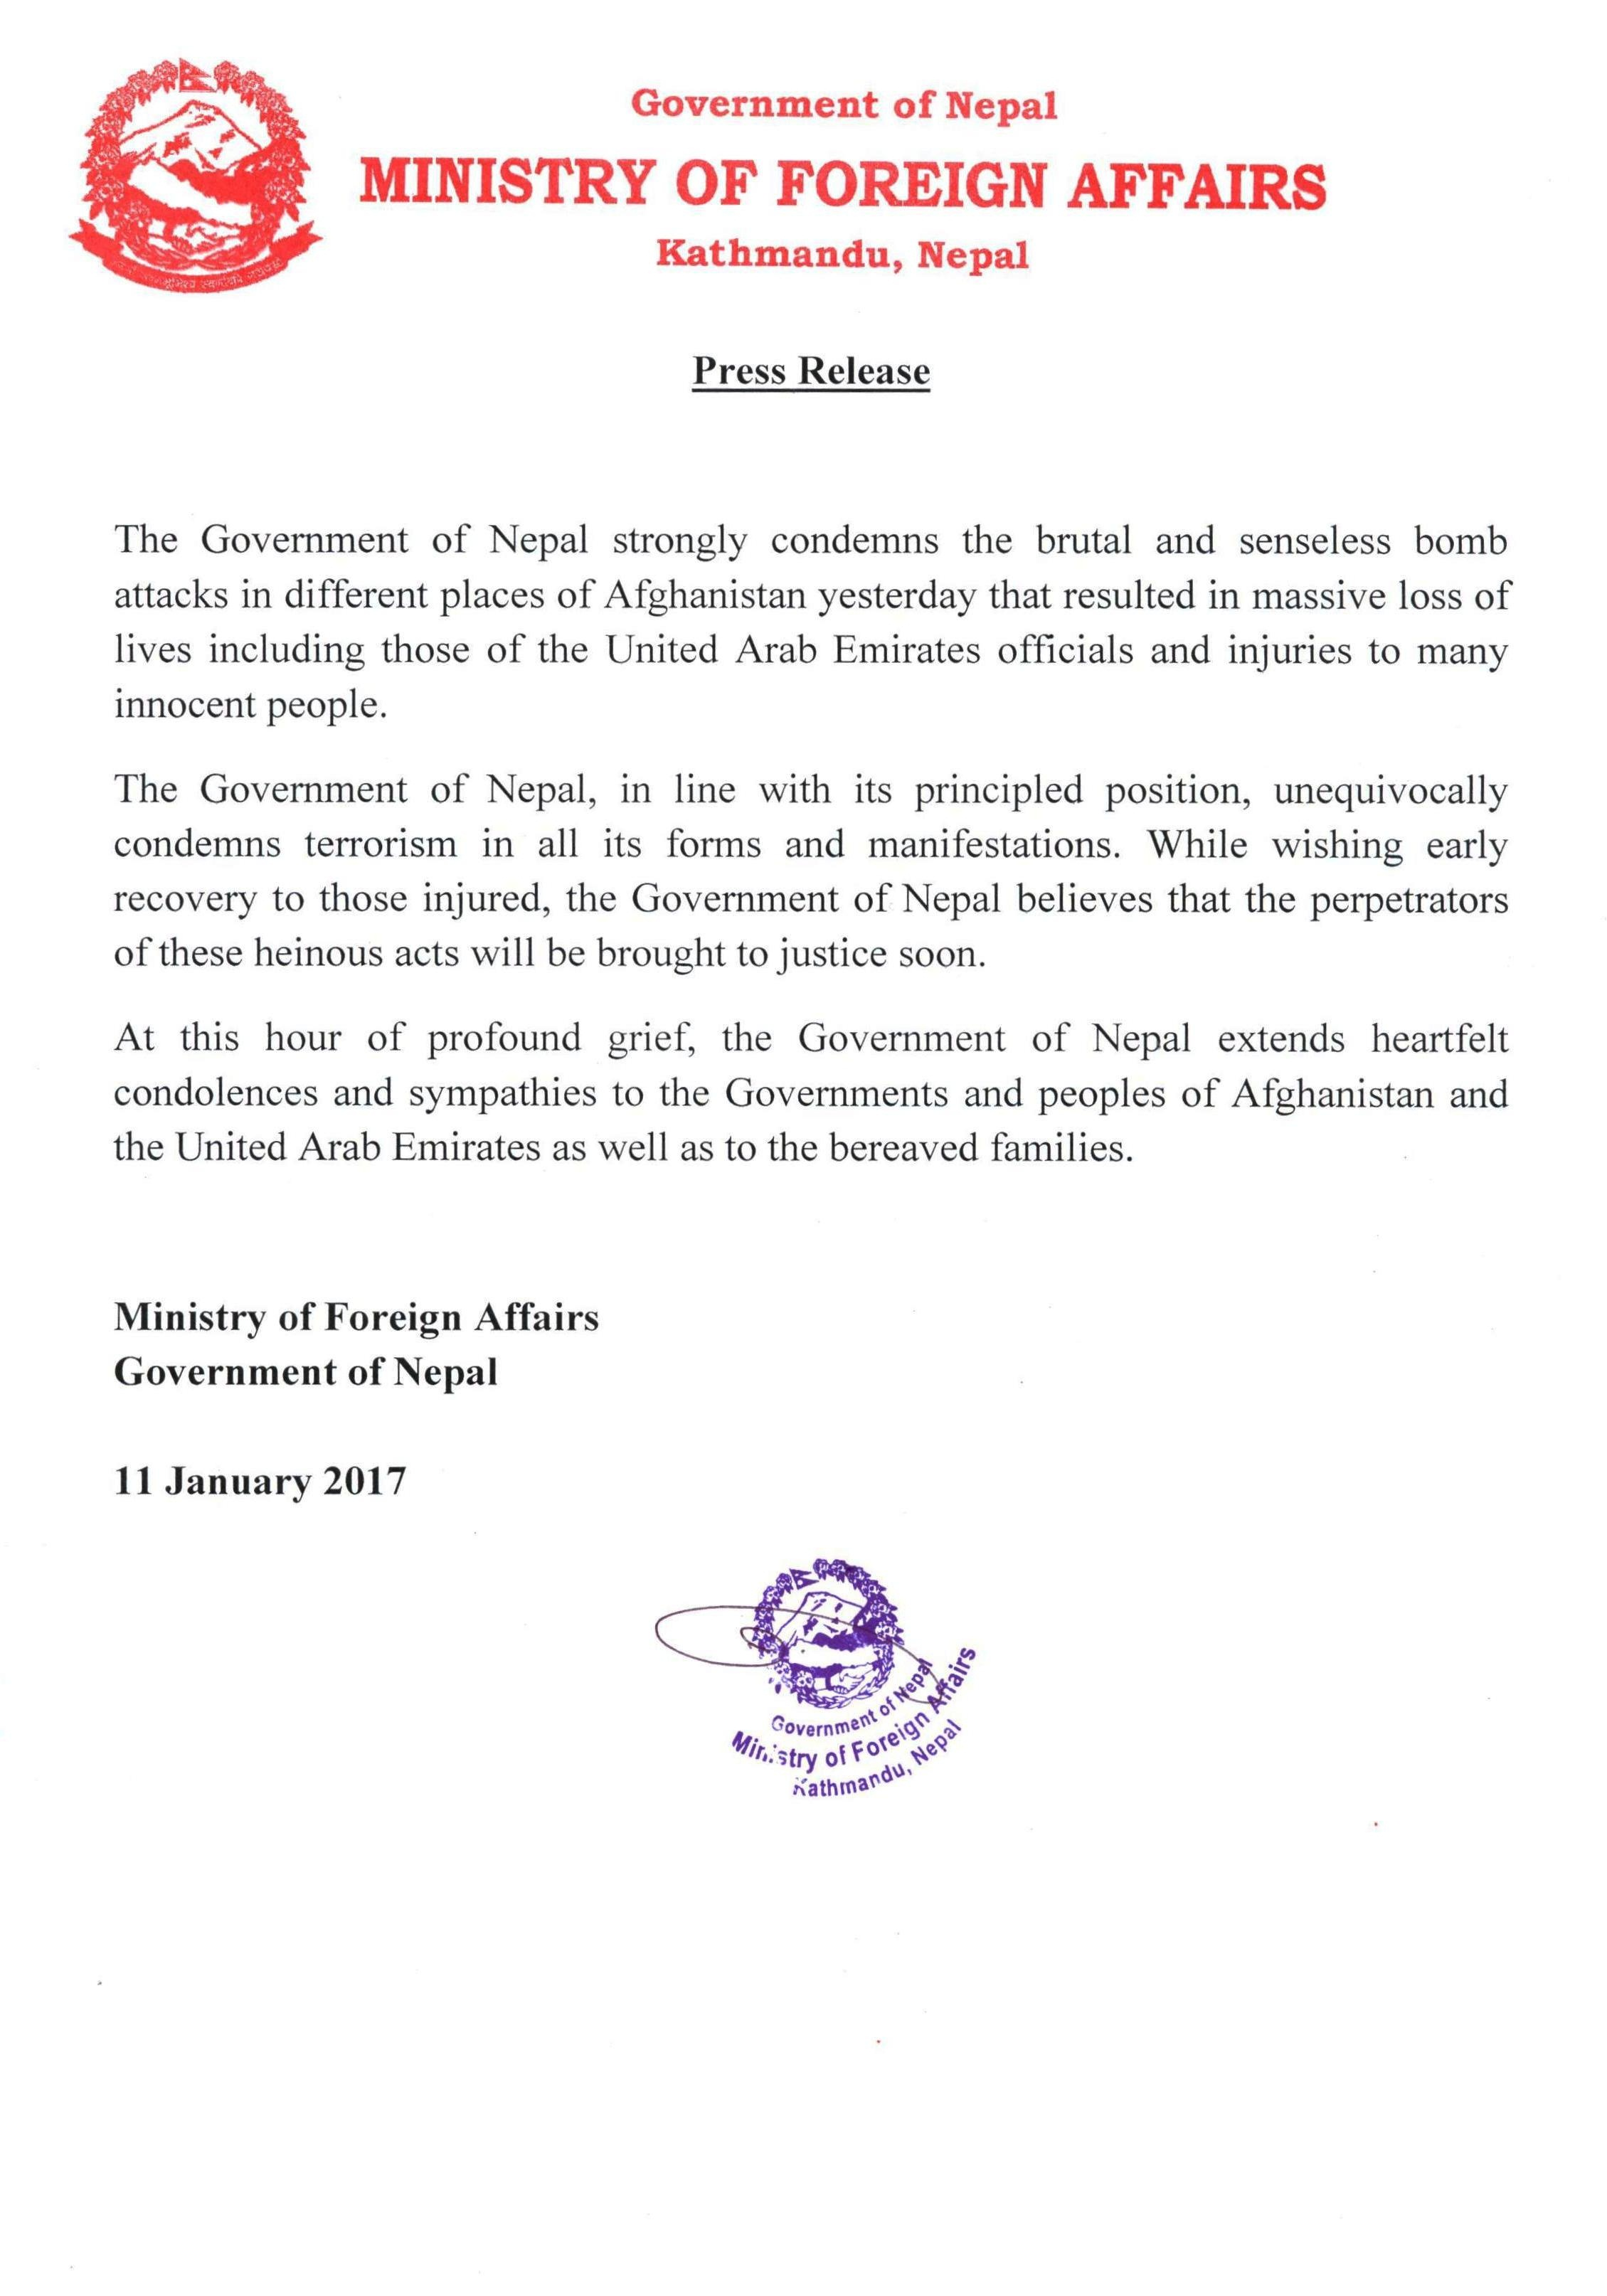 press-release-on-bomb-attacks-in-afghanistan